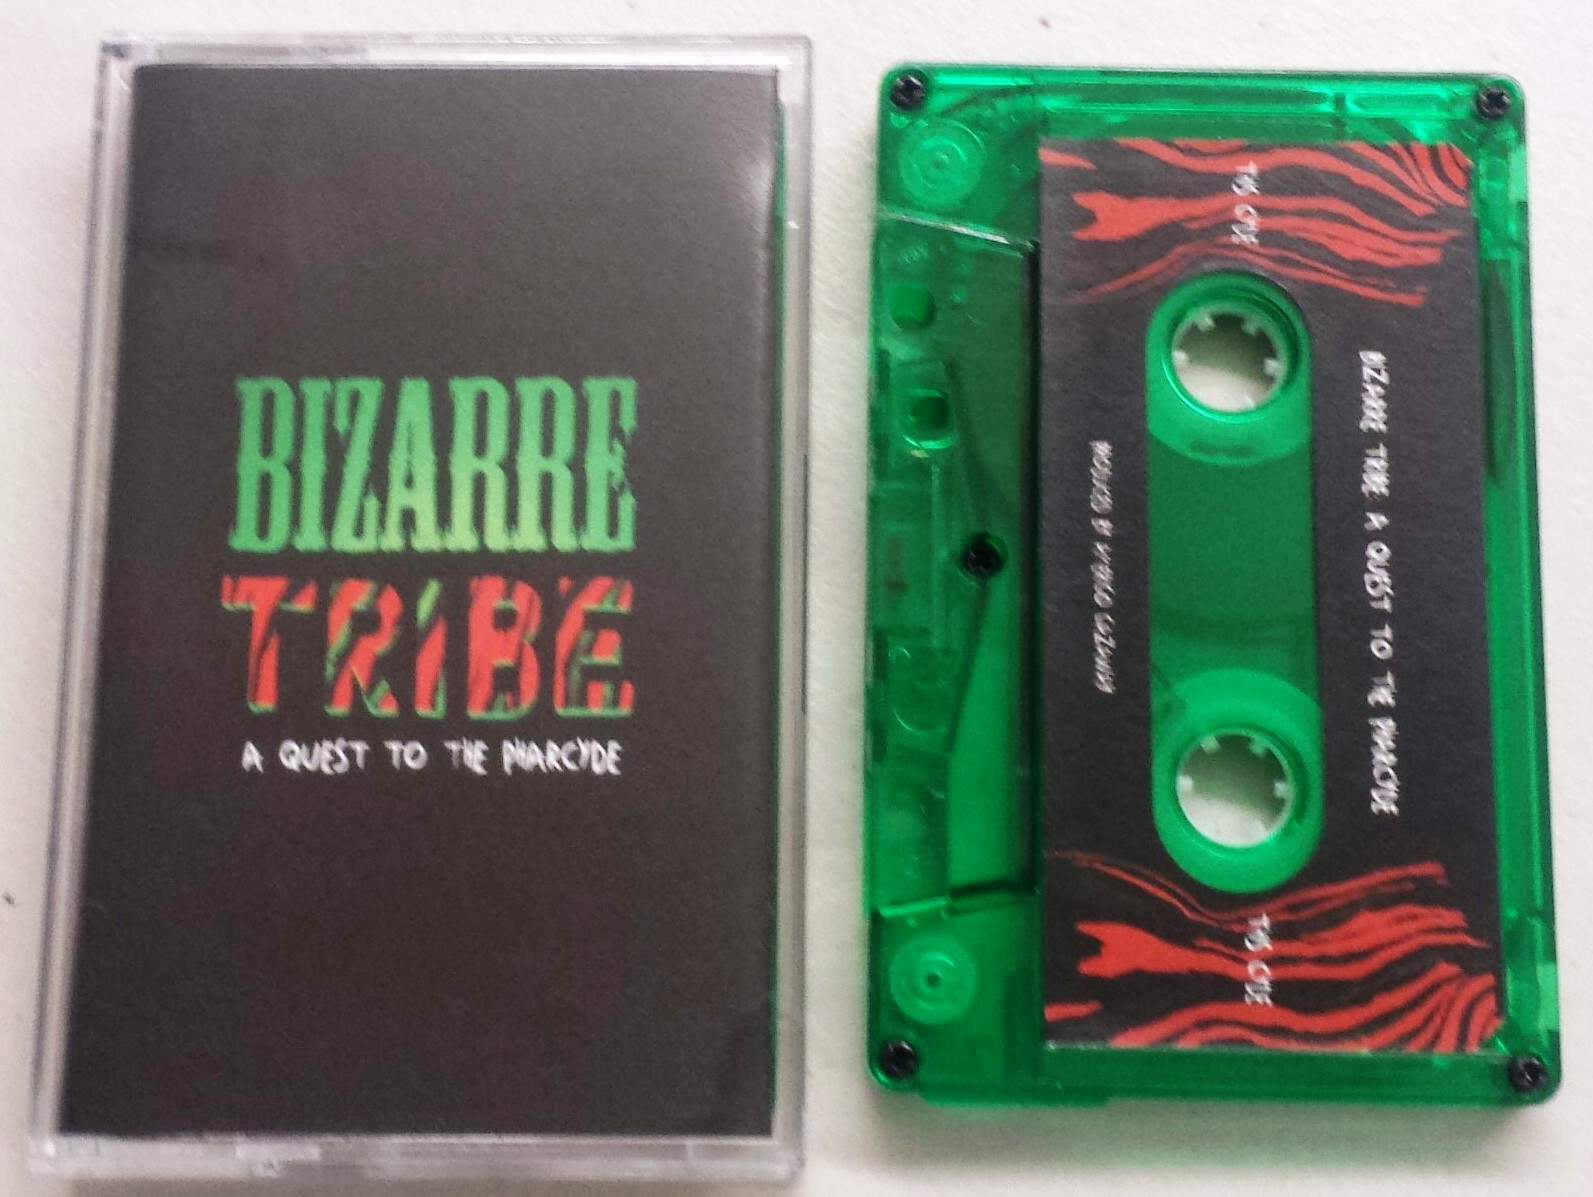 ATCQ vs Pharcyde/BIZARRE TRIBE TAPE